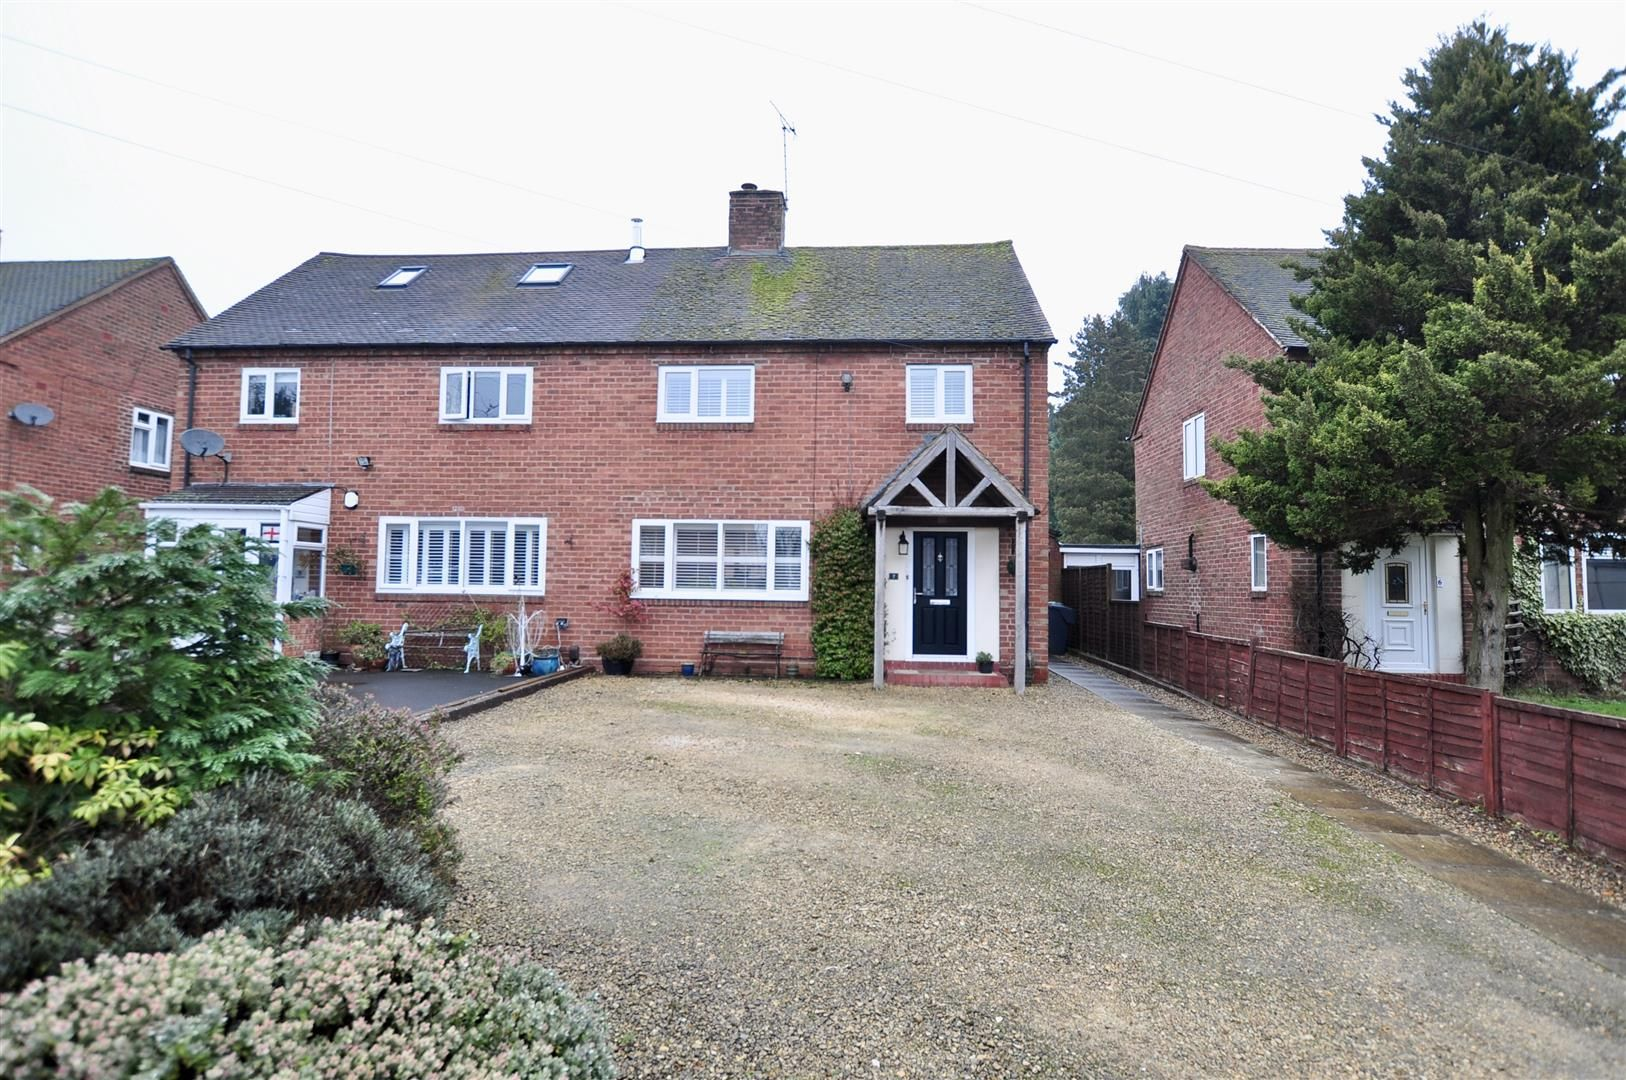 3 bed semi-detached for sale in Hagley 20